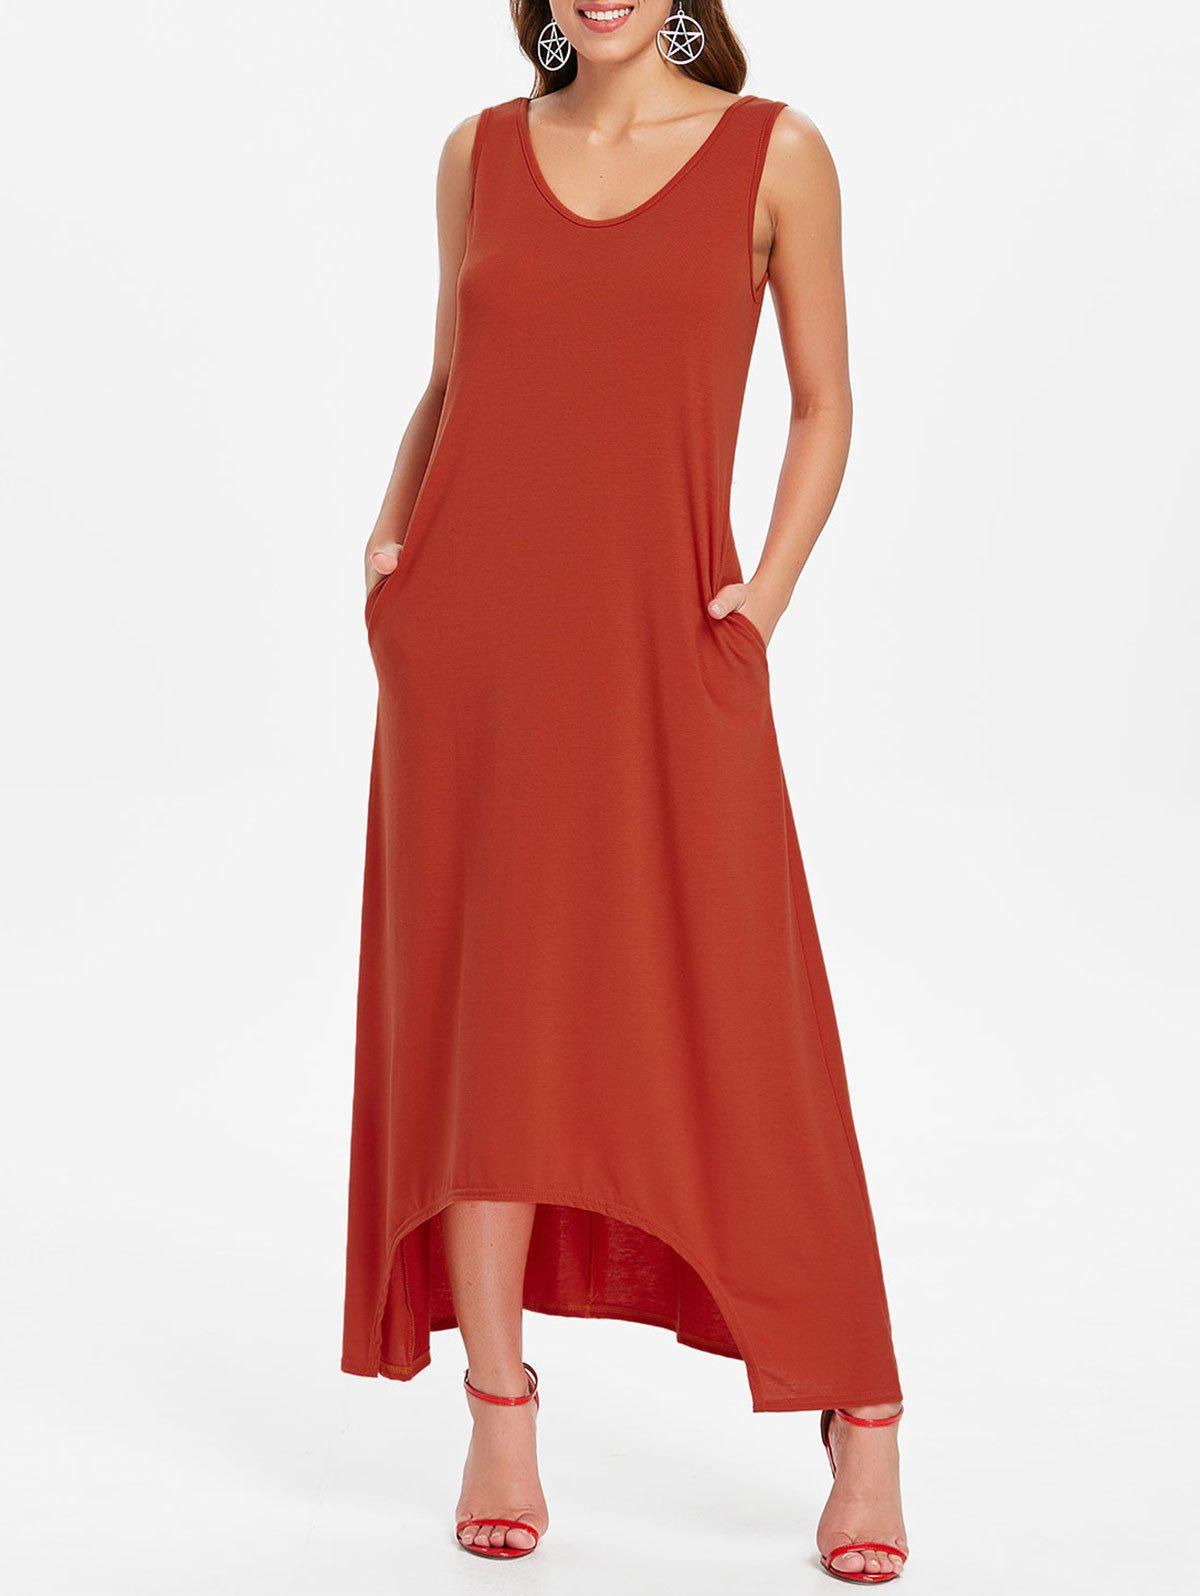 Shop Sleeveless Front Pockets Maxi Dress